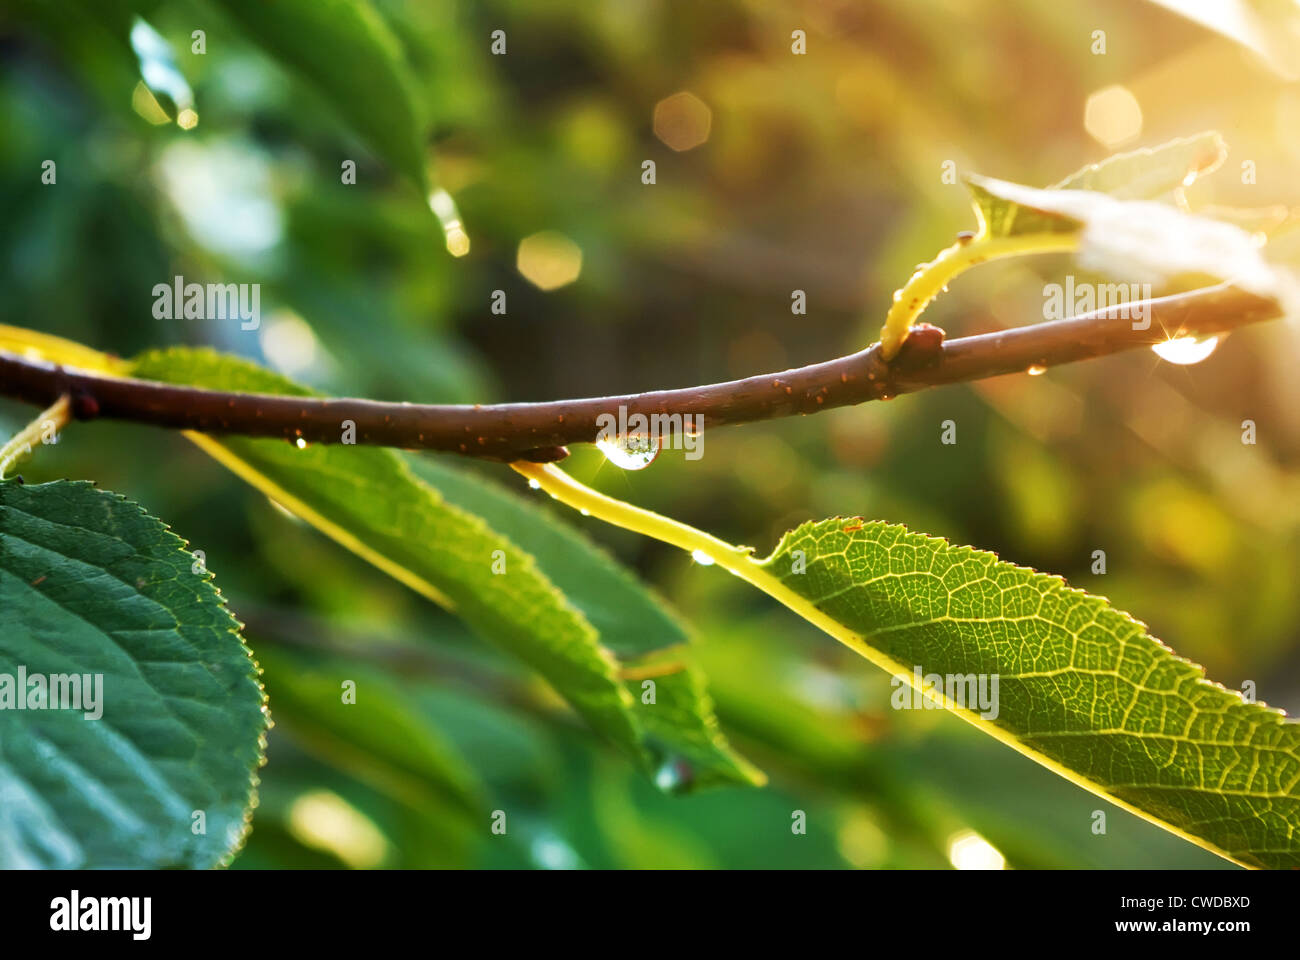 Branch with waterdrop - Stock Image